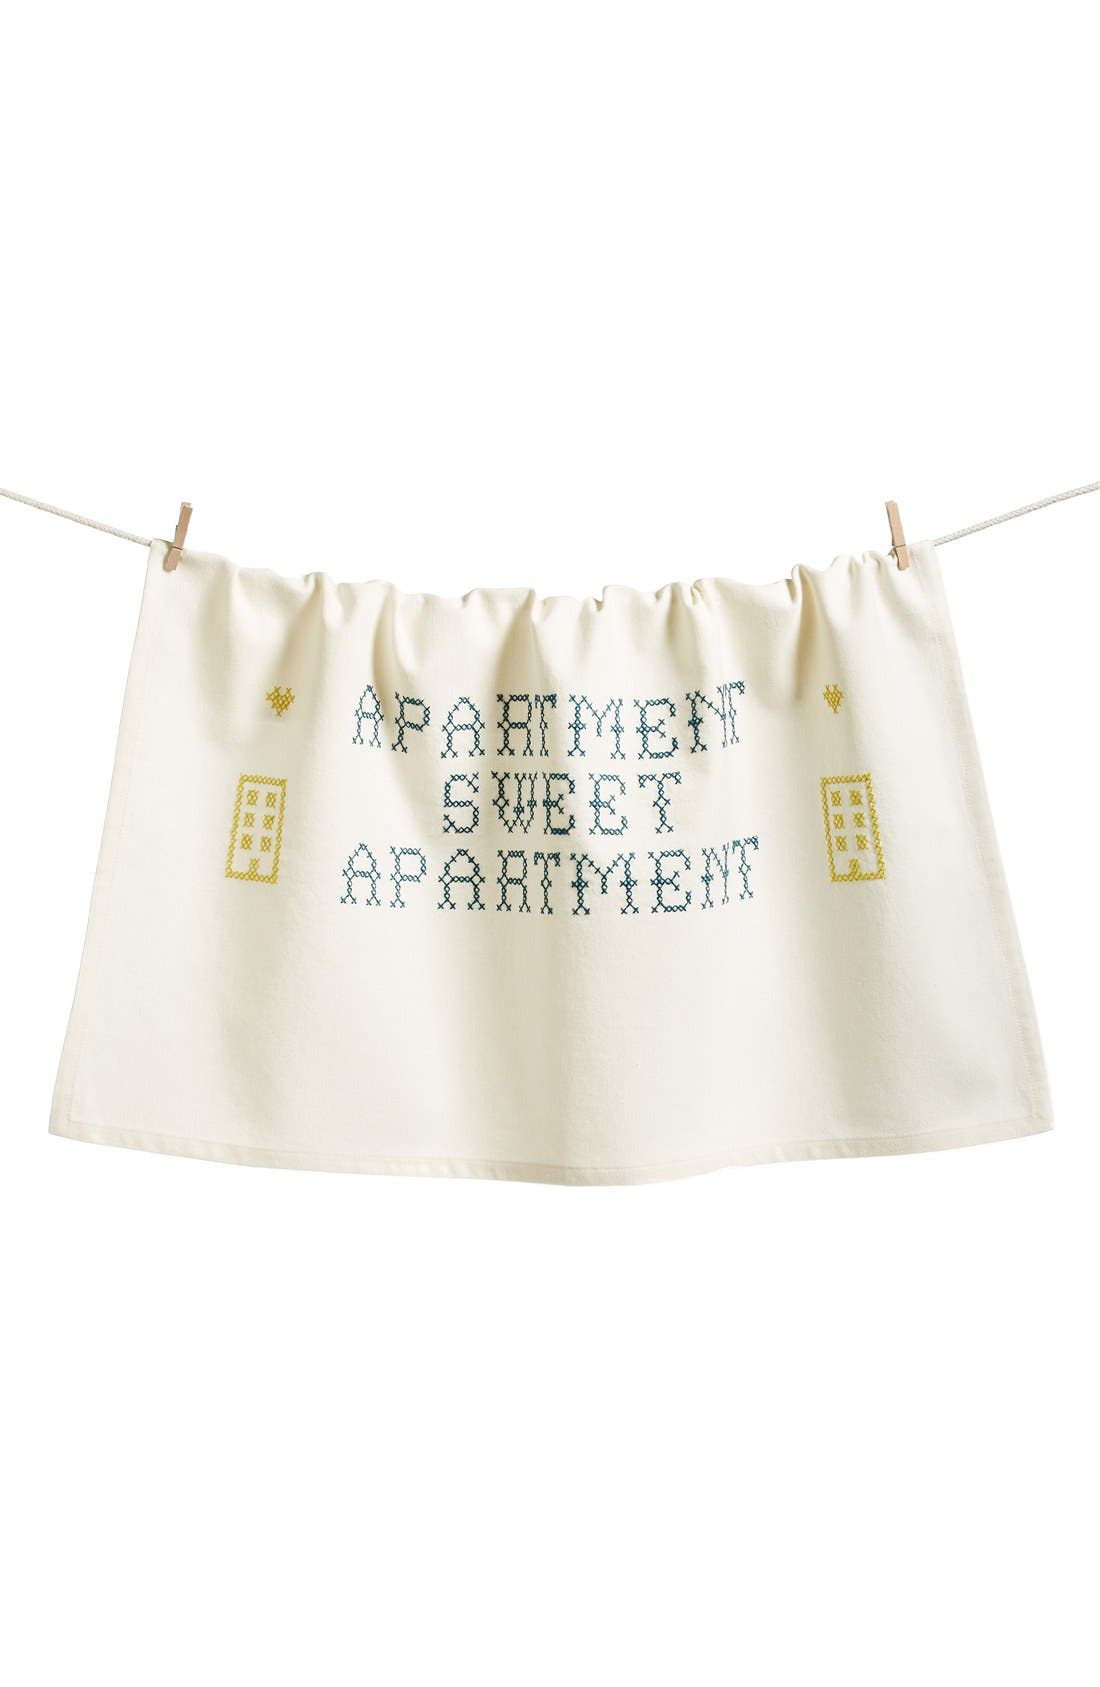 Alternate Image 1 Selected - Nordstrom at Home 'Sweet Apartment' Dish Towel